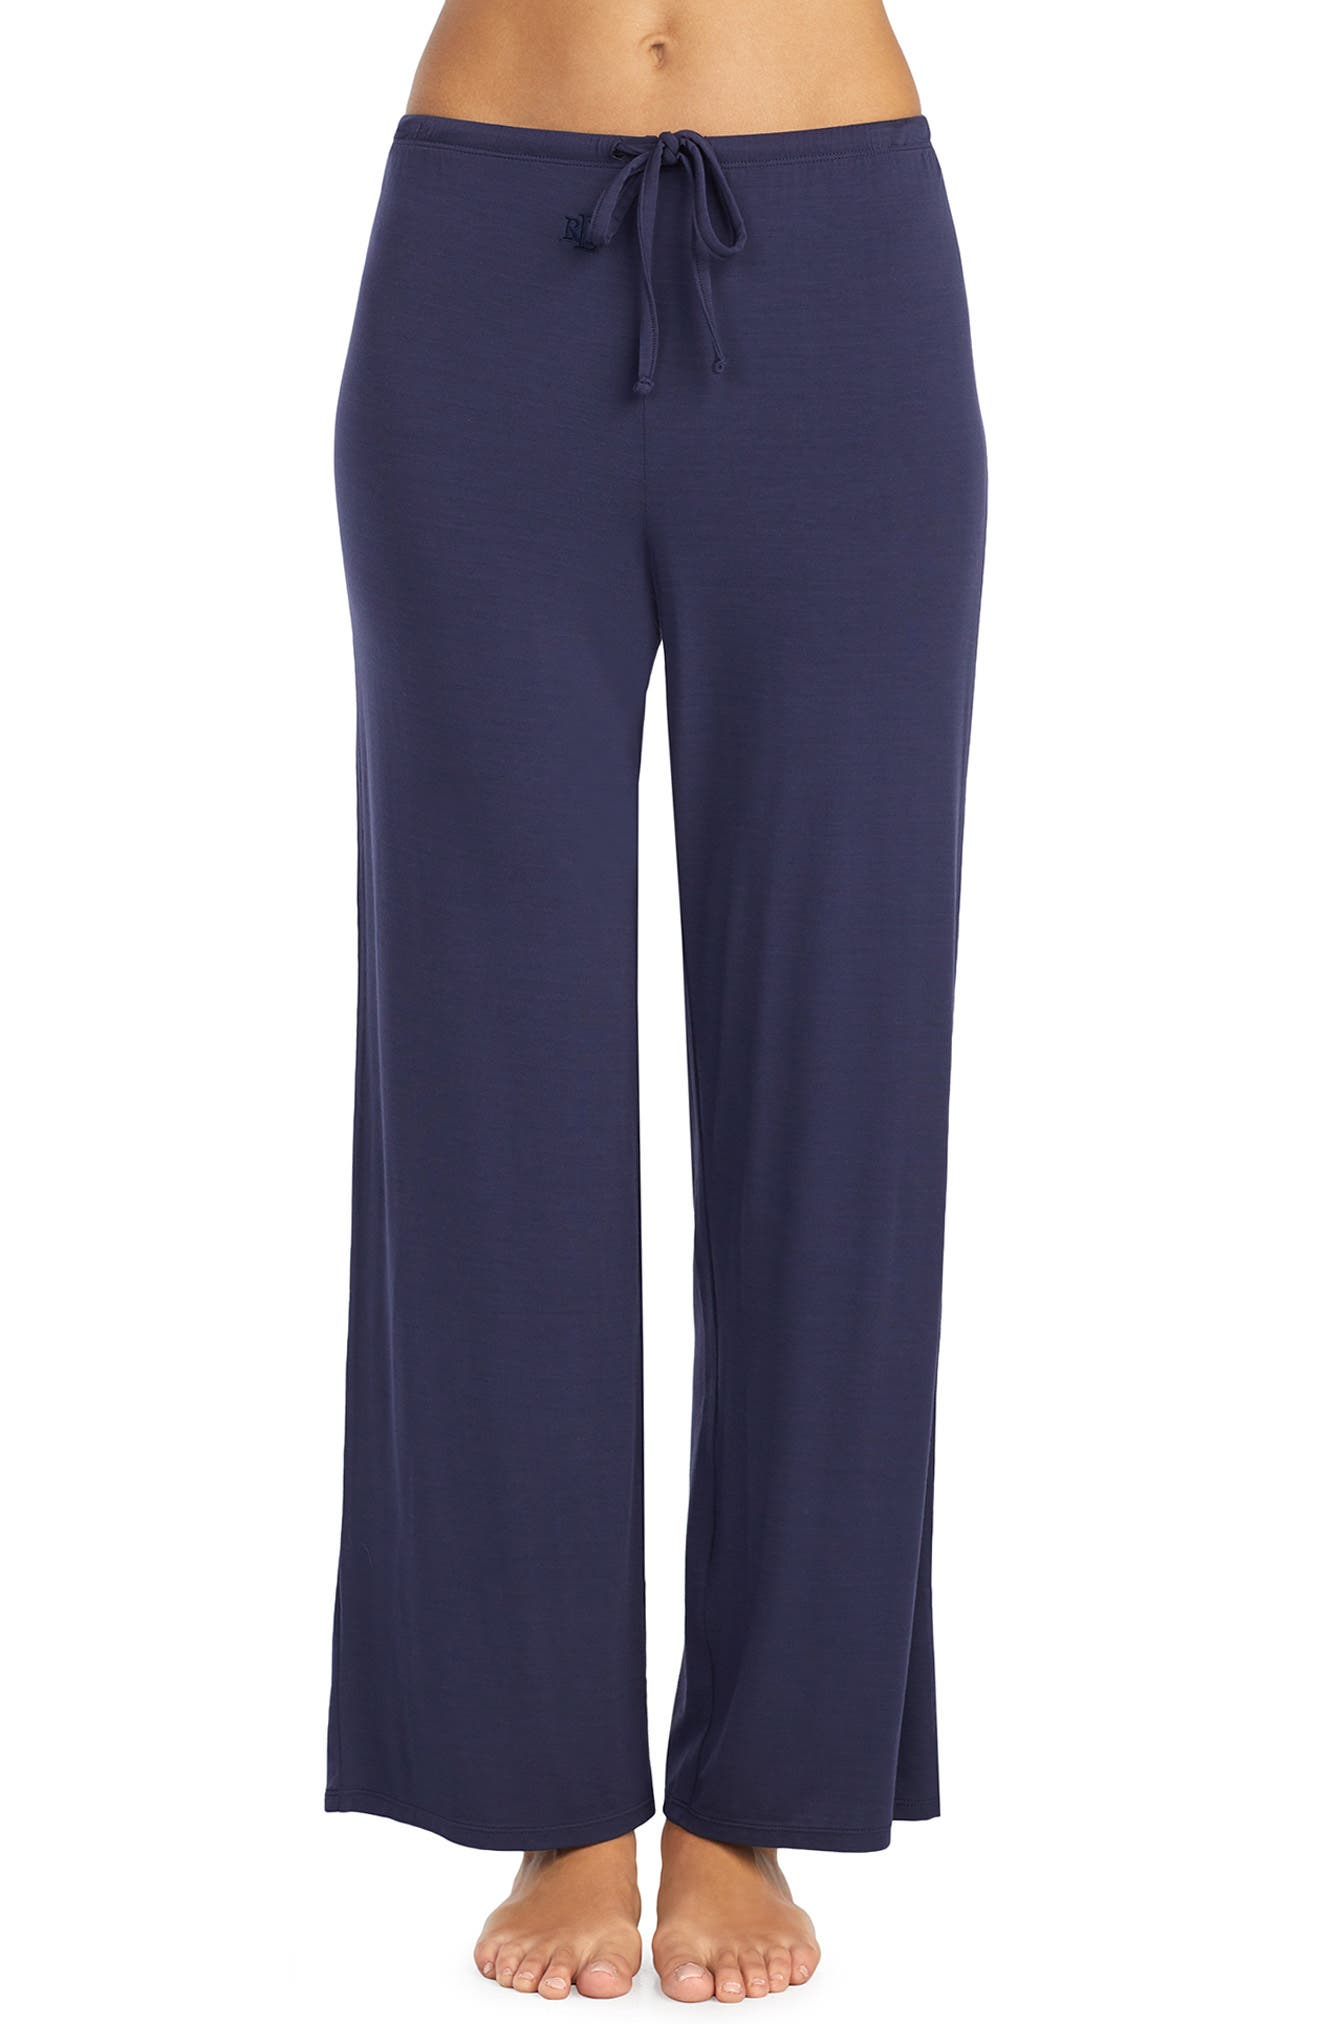 LAUREN RALPH LAUREN Pajama Pants, Main, color, NAVY